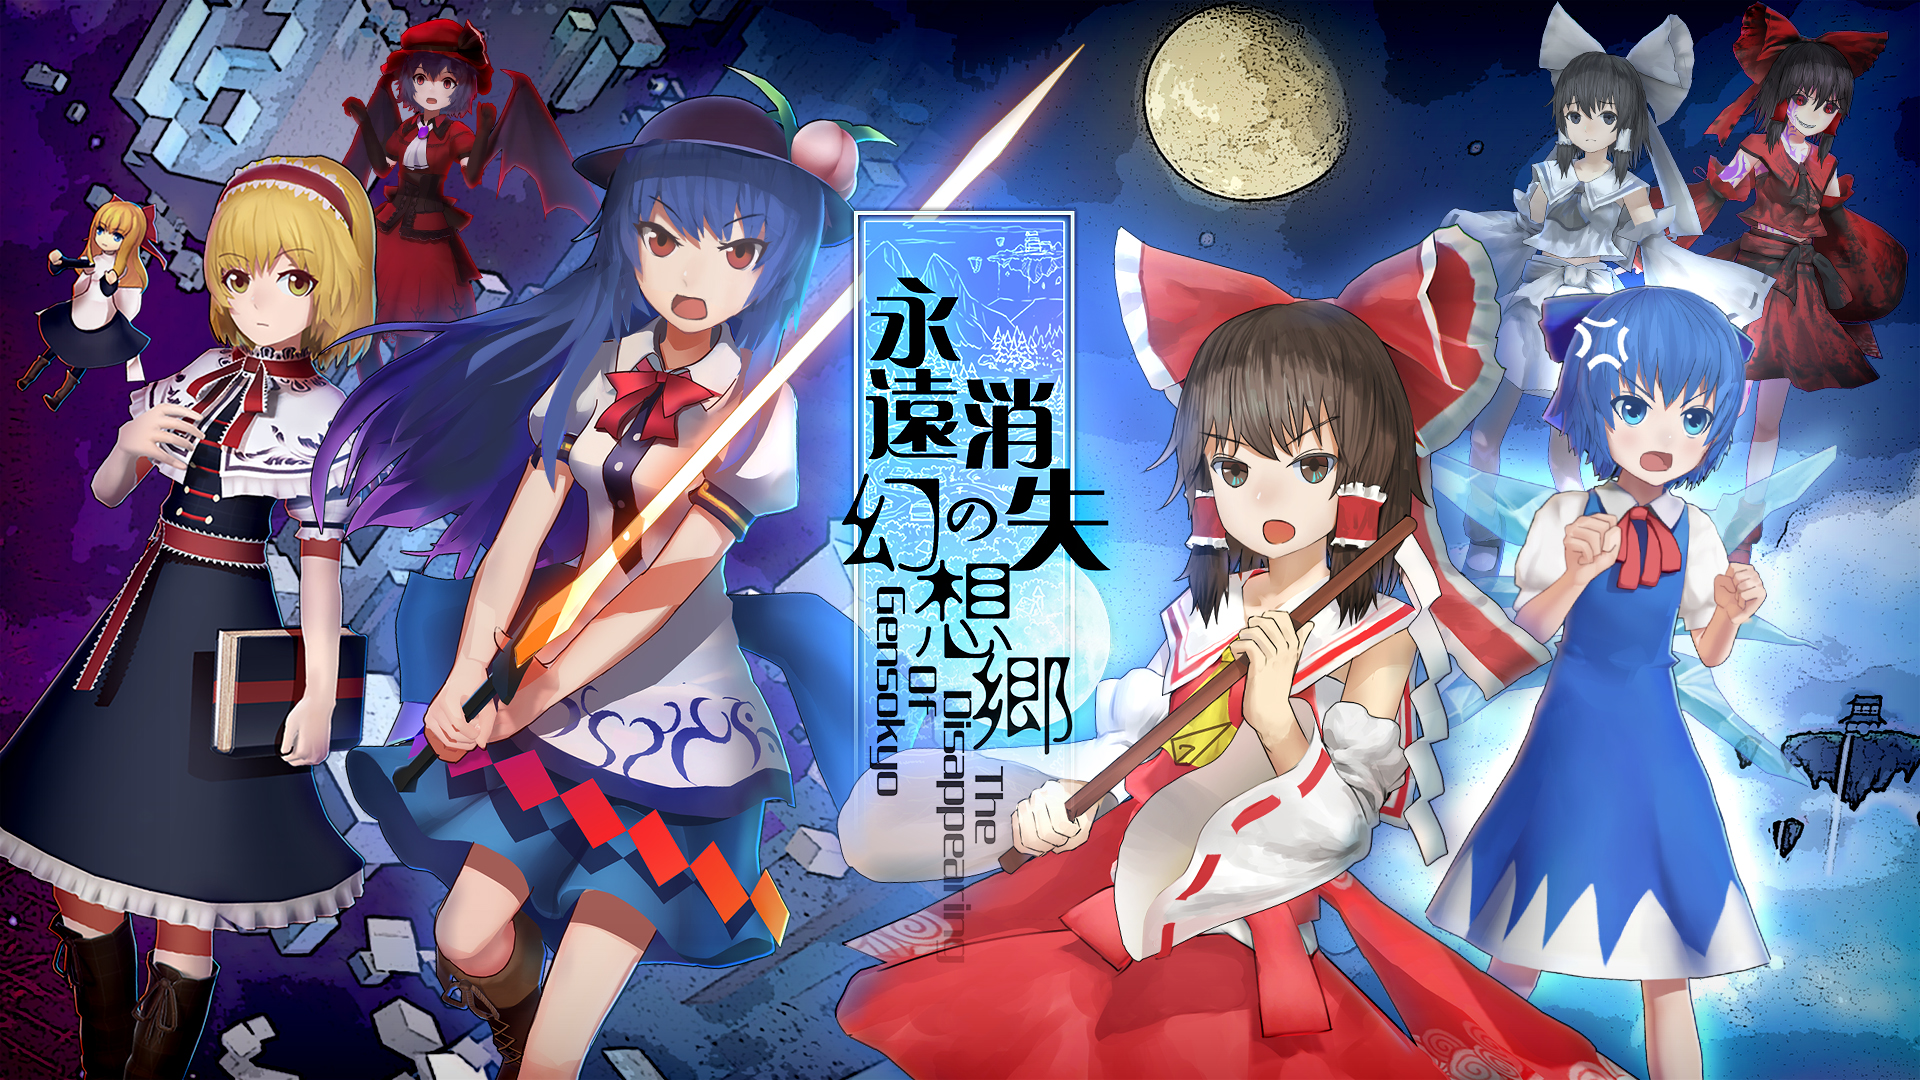 """My Final Boss Music for Steam Game """"The Disappearing of Gensokyo"""""""